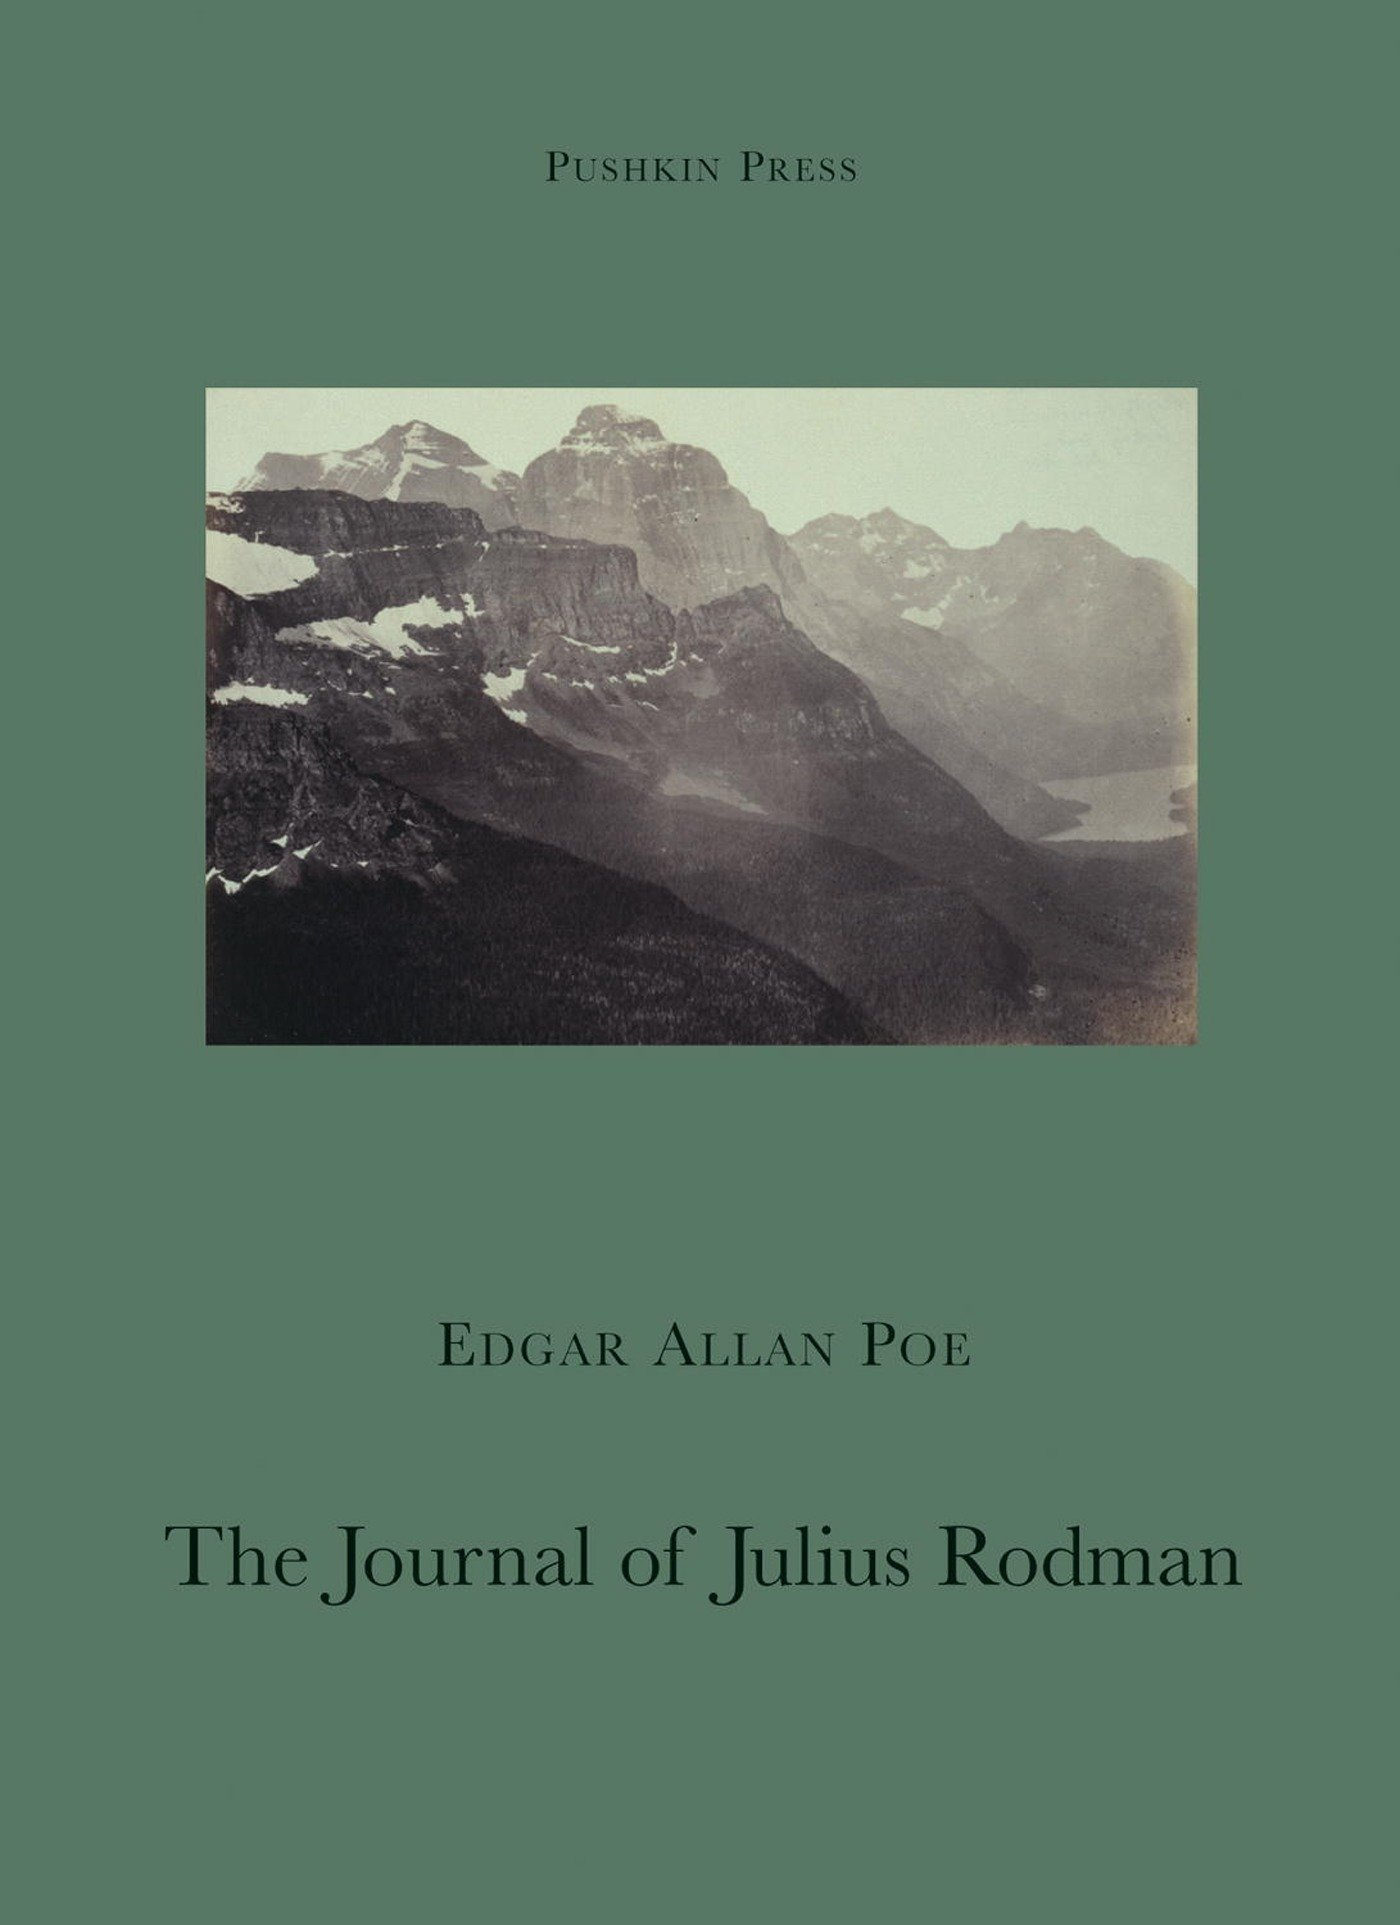 Amazon.com: The Journal of Julius Rodman (Pushkin Collection)  (9781901285956): Poe, Edgar Allan, David, Michael: Books